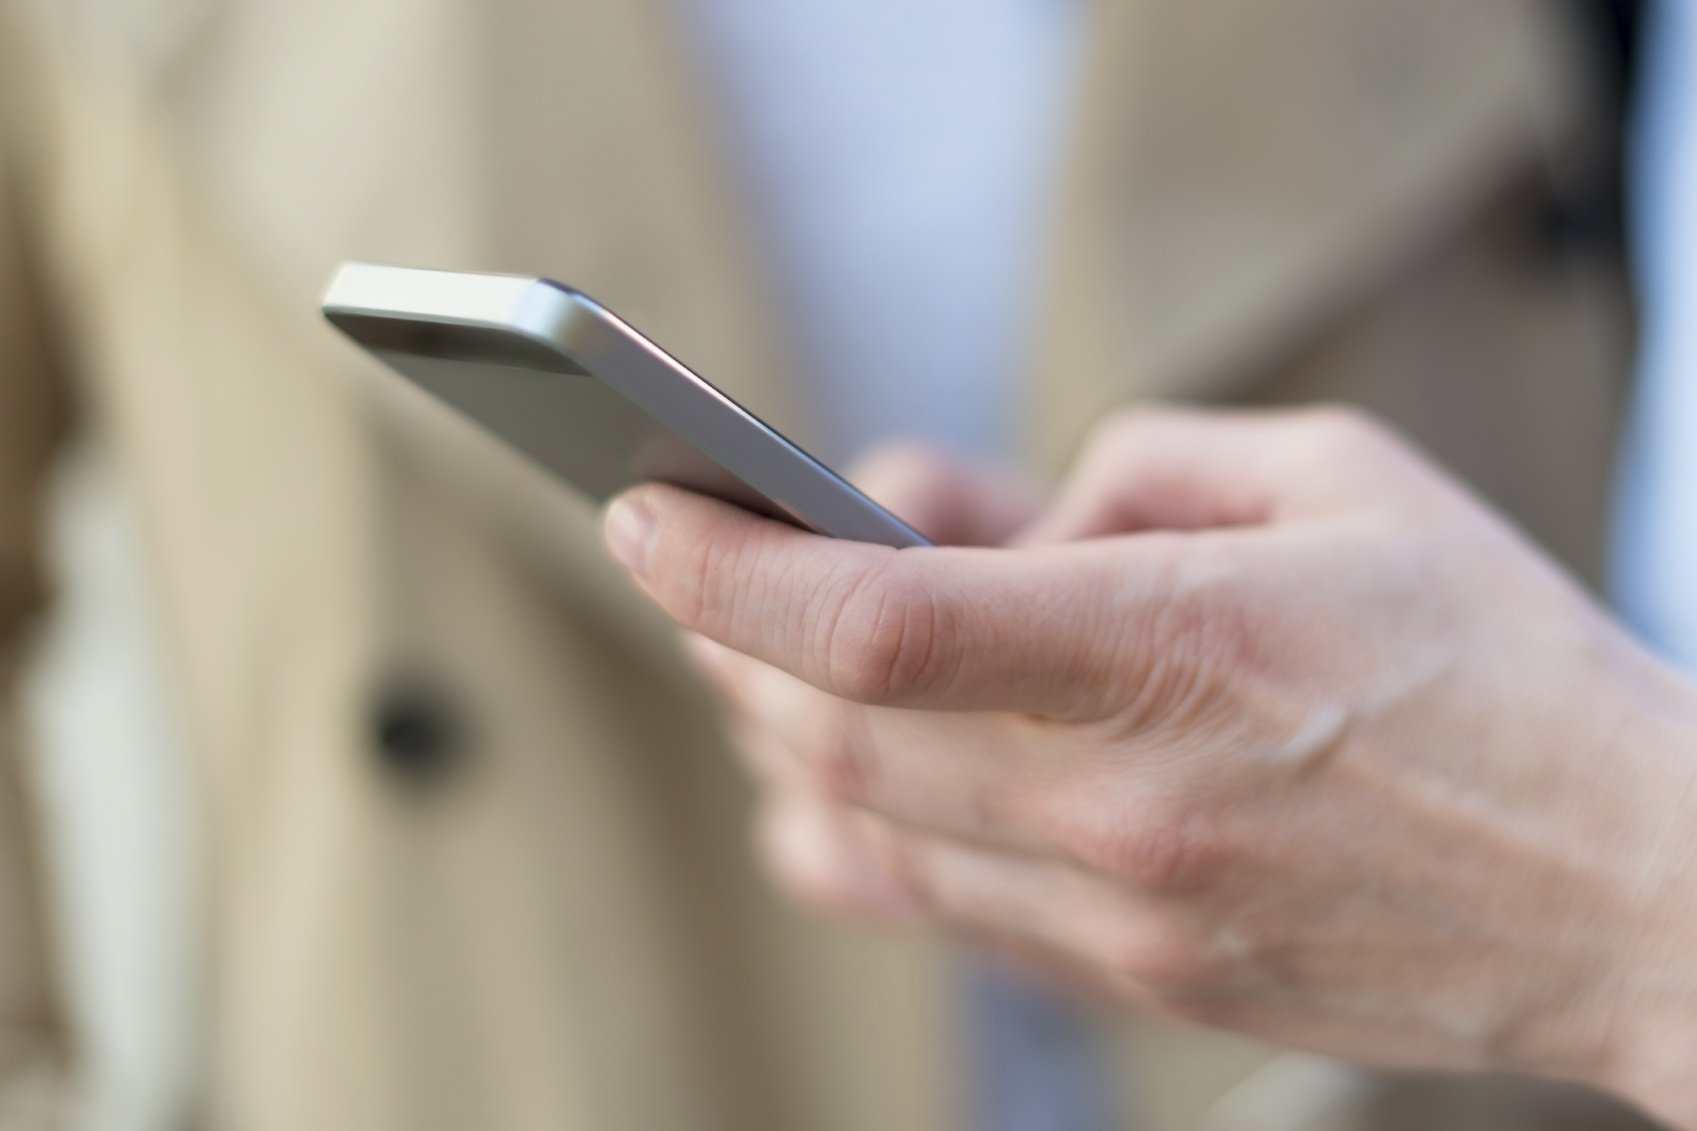 mobile websites penalized by popups